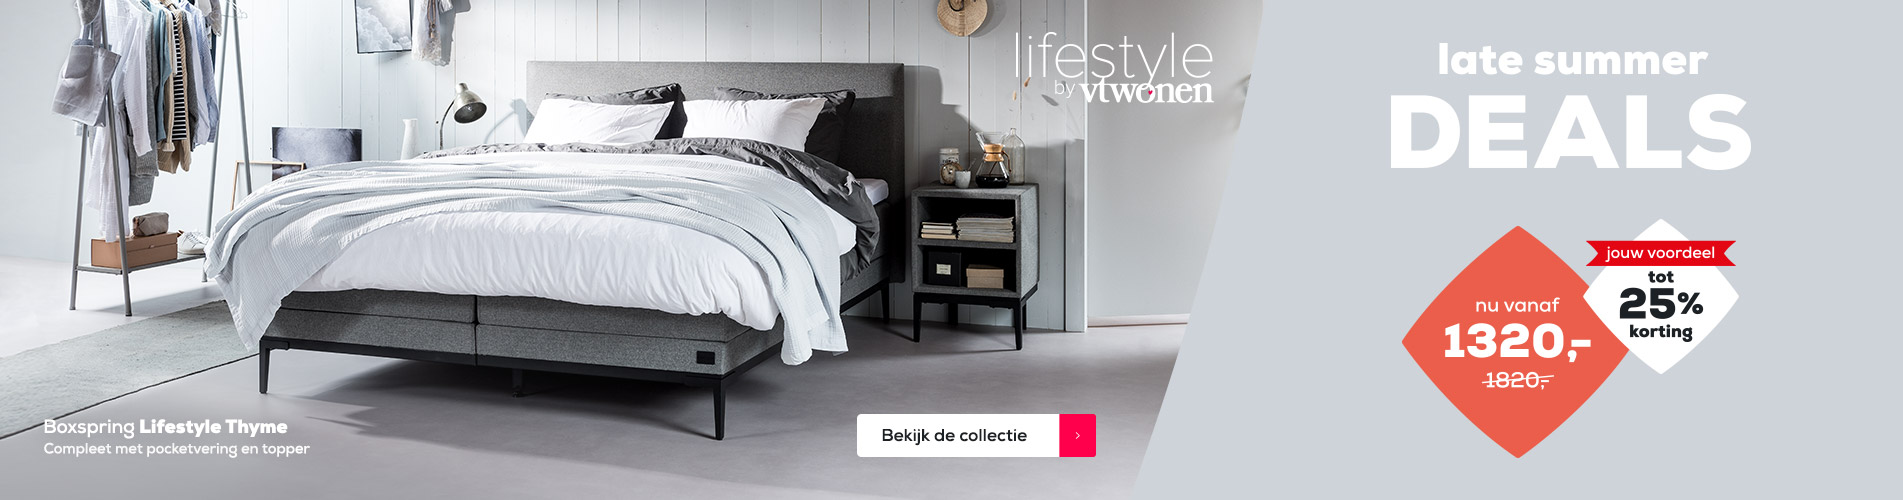 Boxspring Collectie Lifestyle tot 25% korting | Late Summer Deals | Swiss Sense